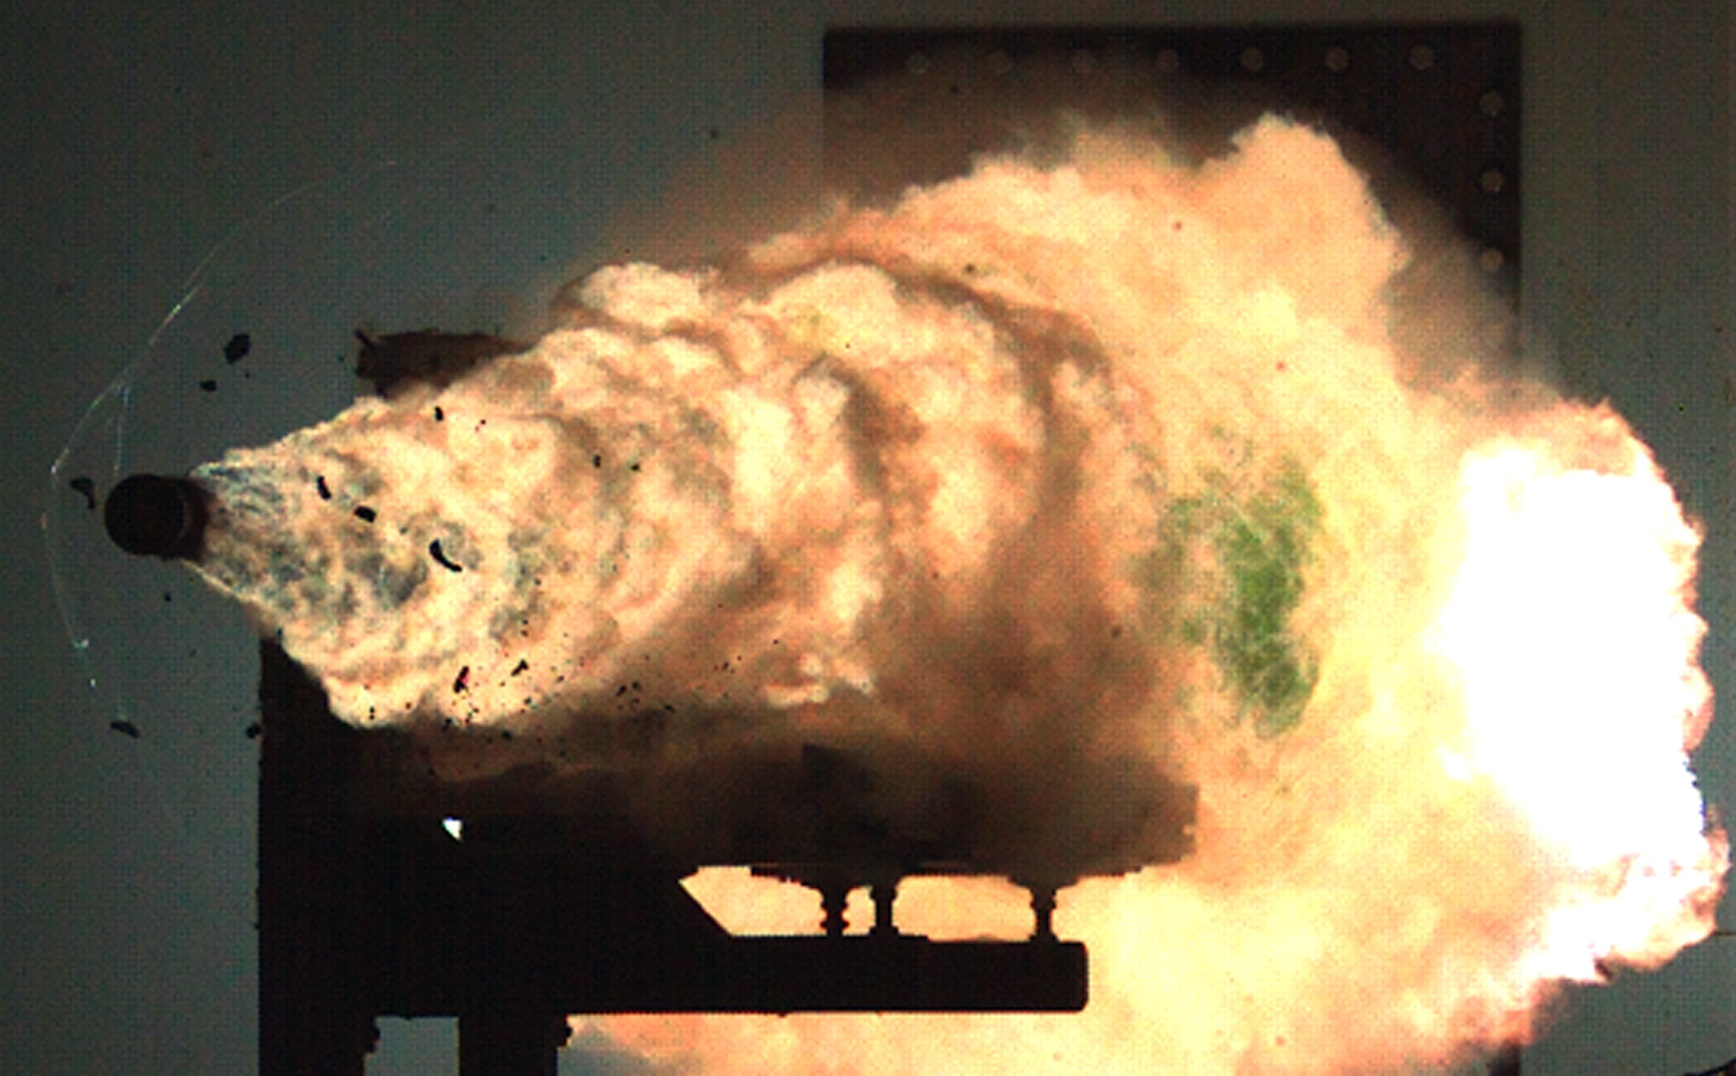 """Navy: Railgun Tests to """"Blow the Top Off a Mountain"""" 